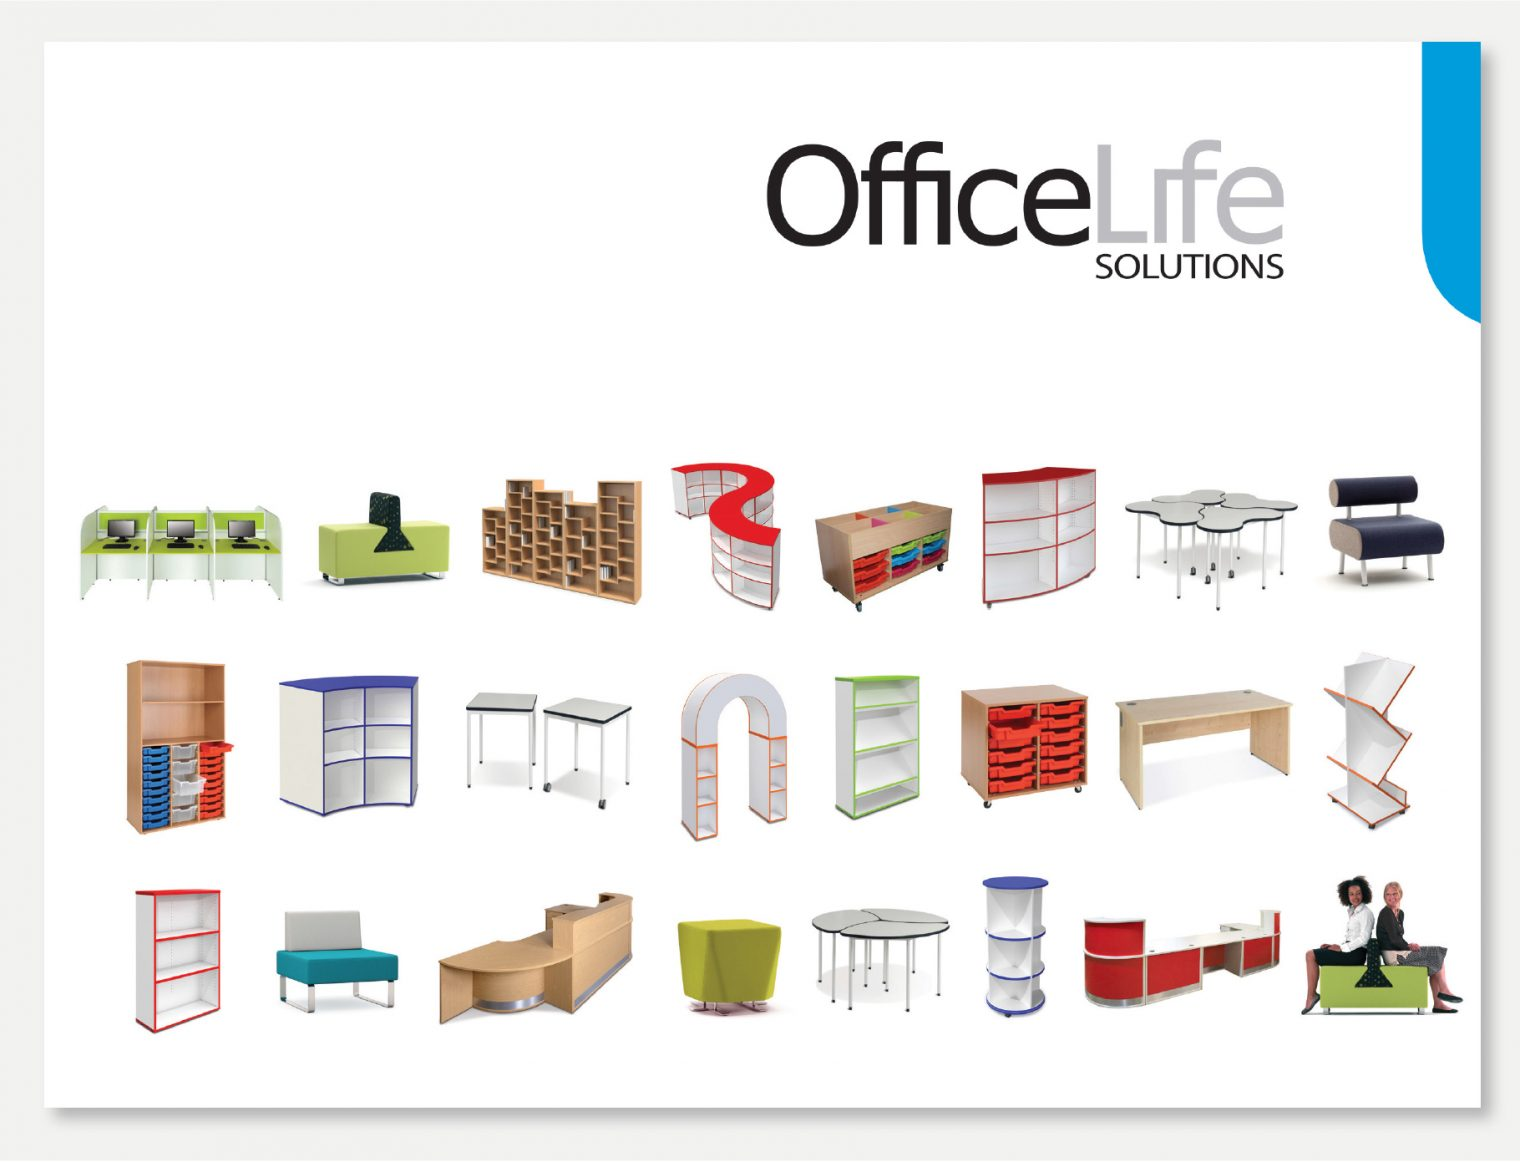 OFFICELIFE-PROJECT-IMAGE_16